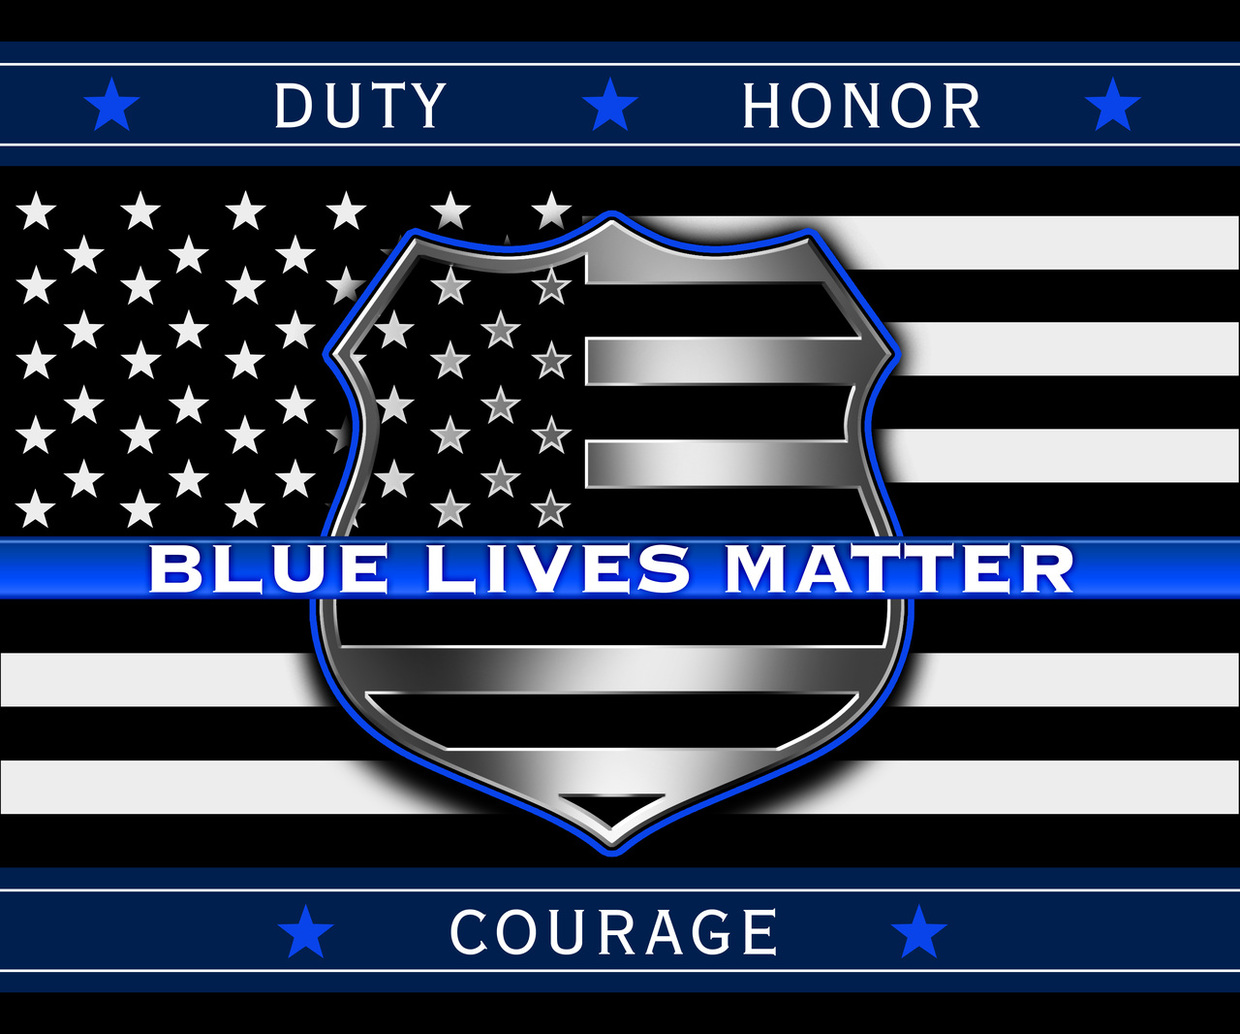 Blue Lives Matter! Click on the banner for an important message from Douglas Ducote.